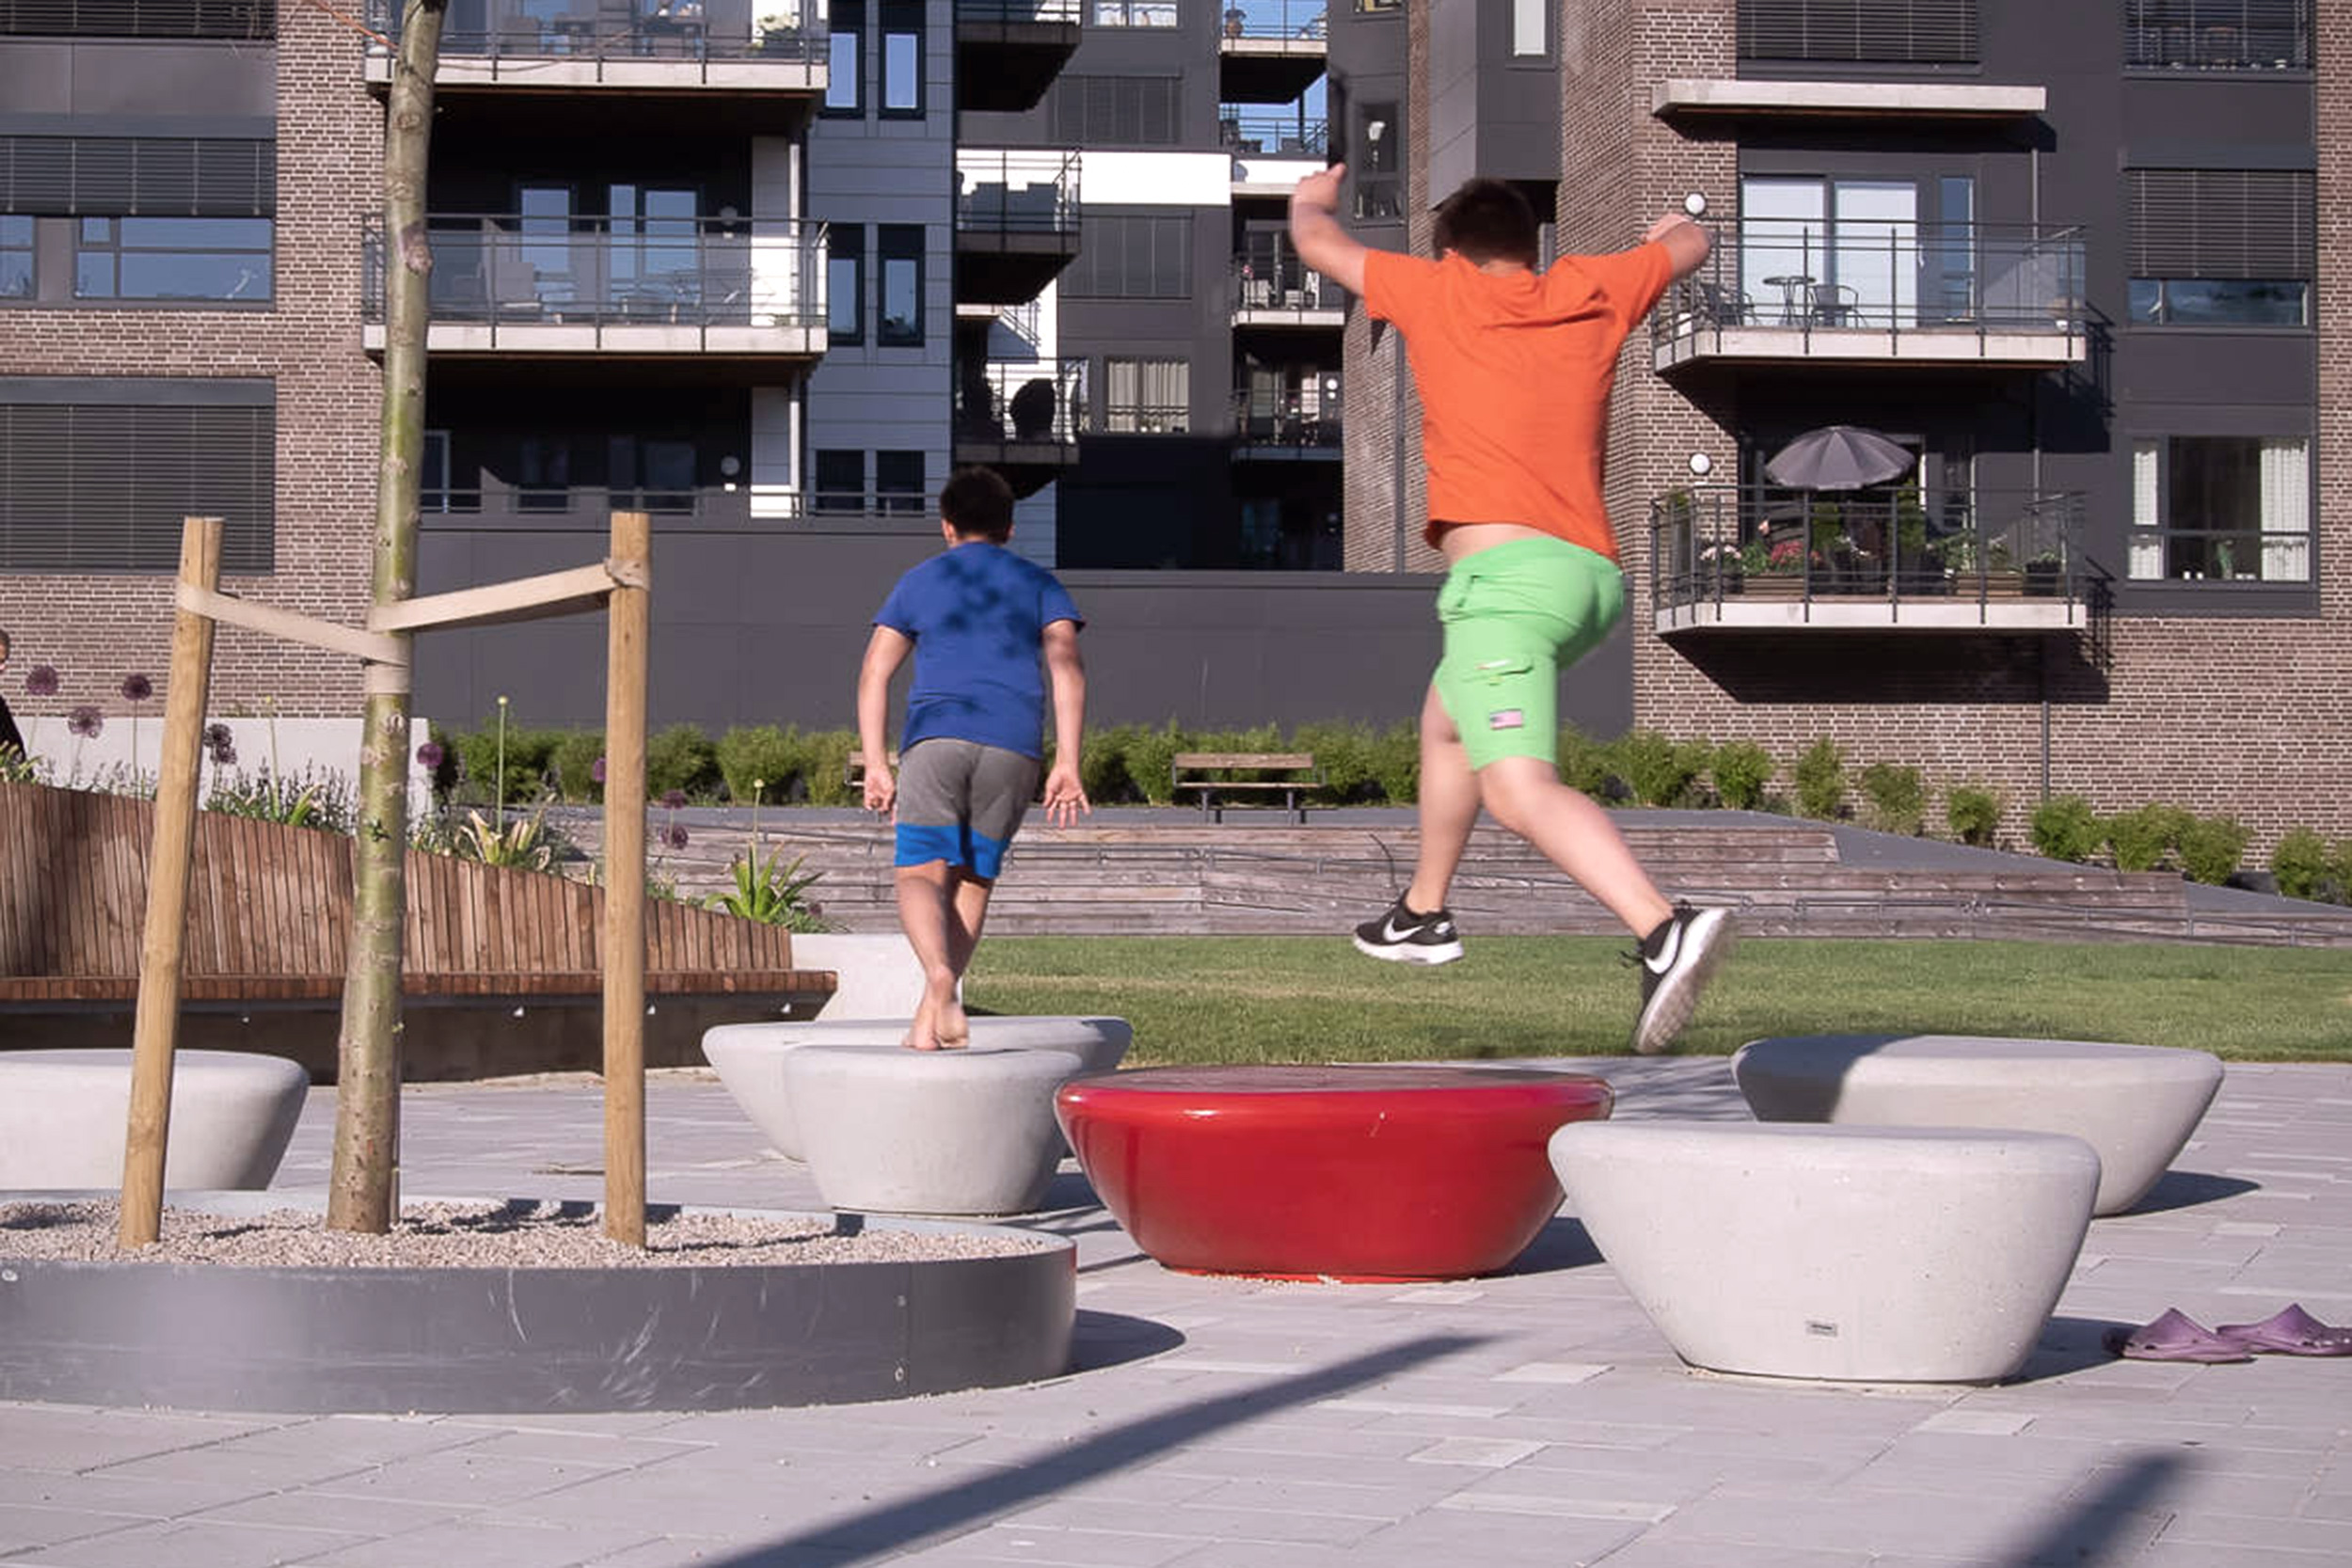 Children playing parkour at the Arendal park in Norway